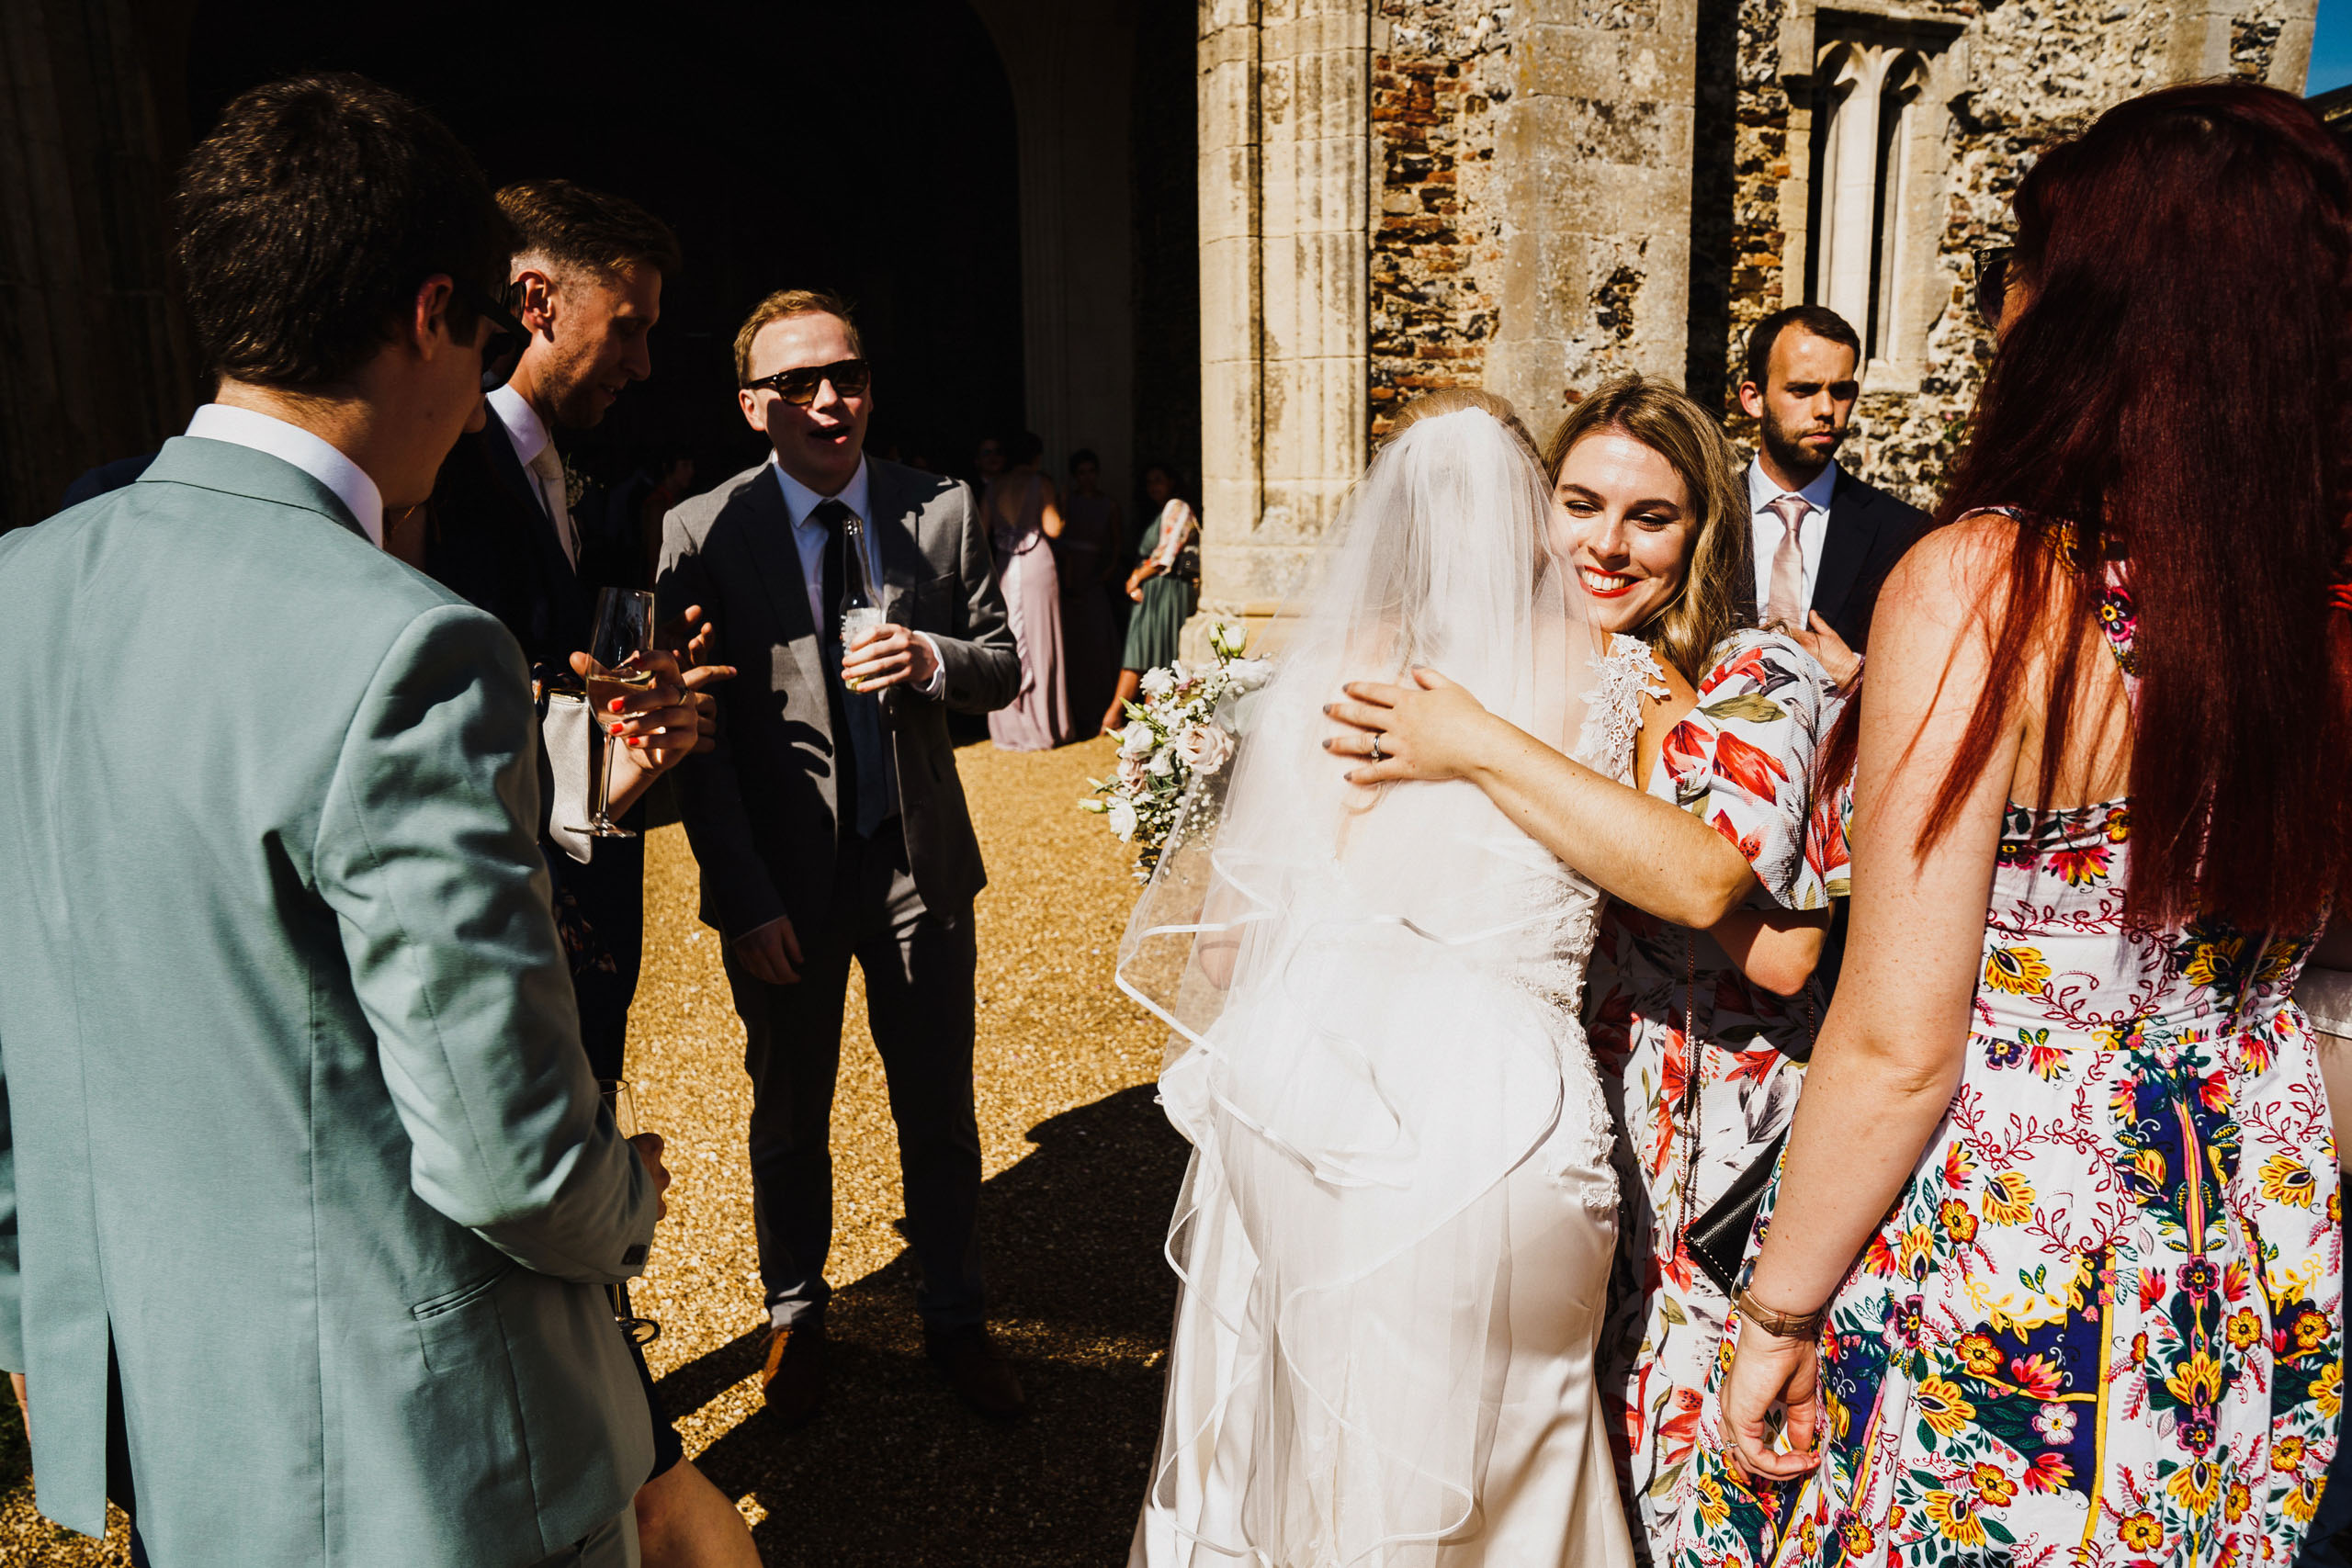 A weding guest and the bride embrace at Pentney Abbey